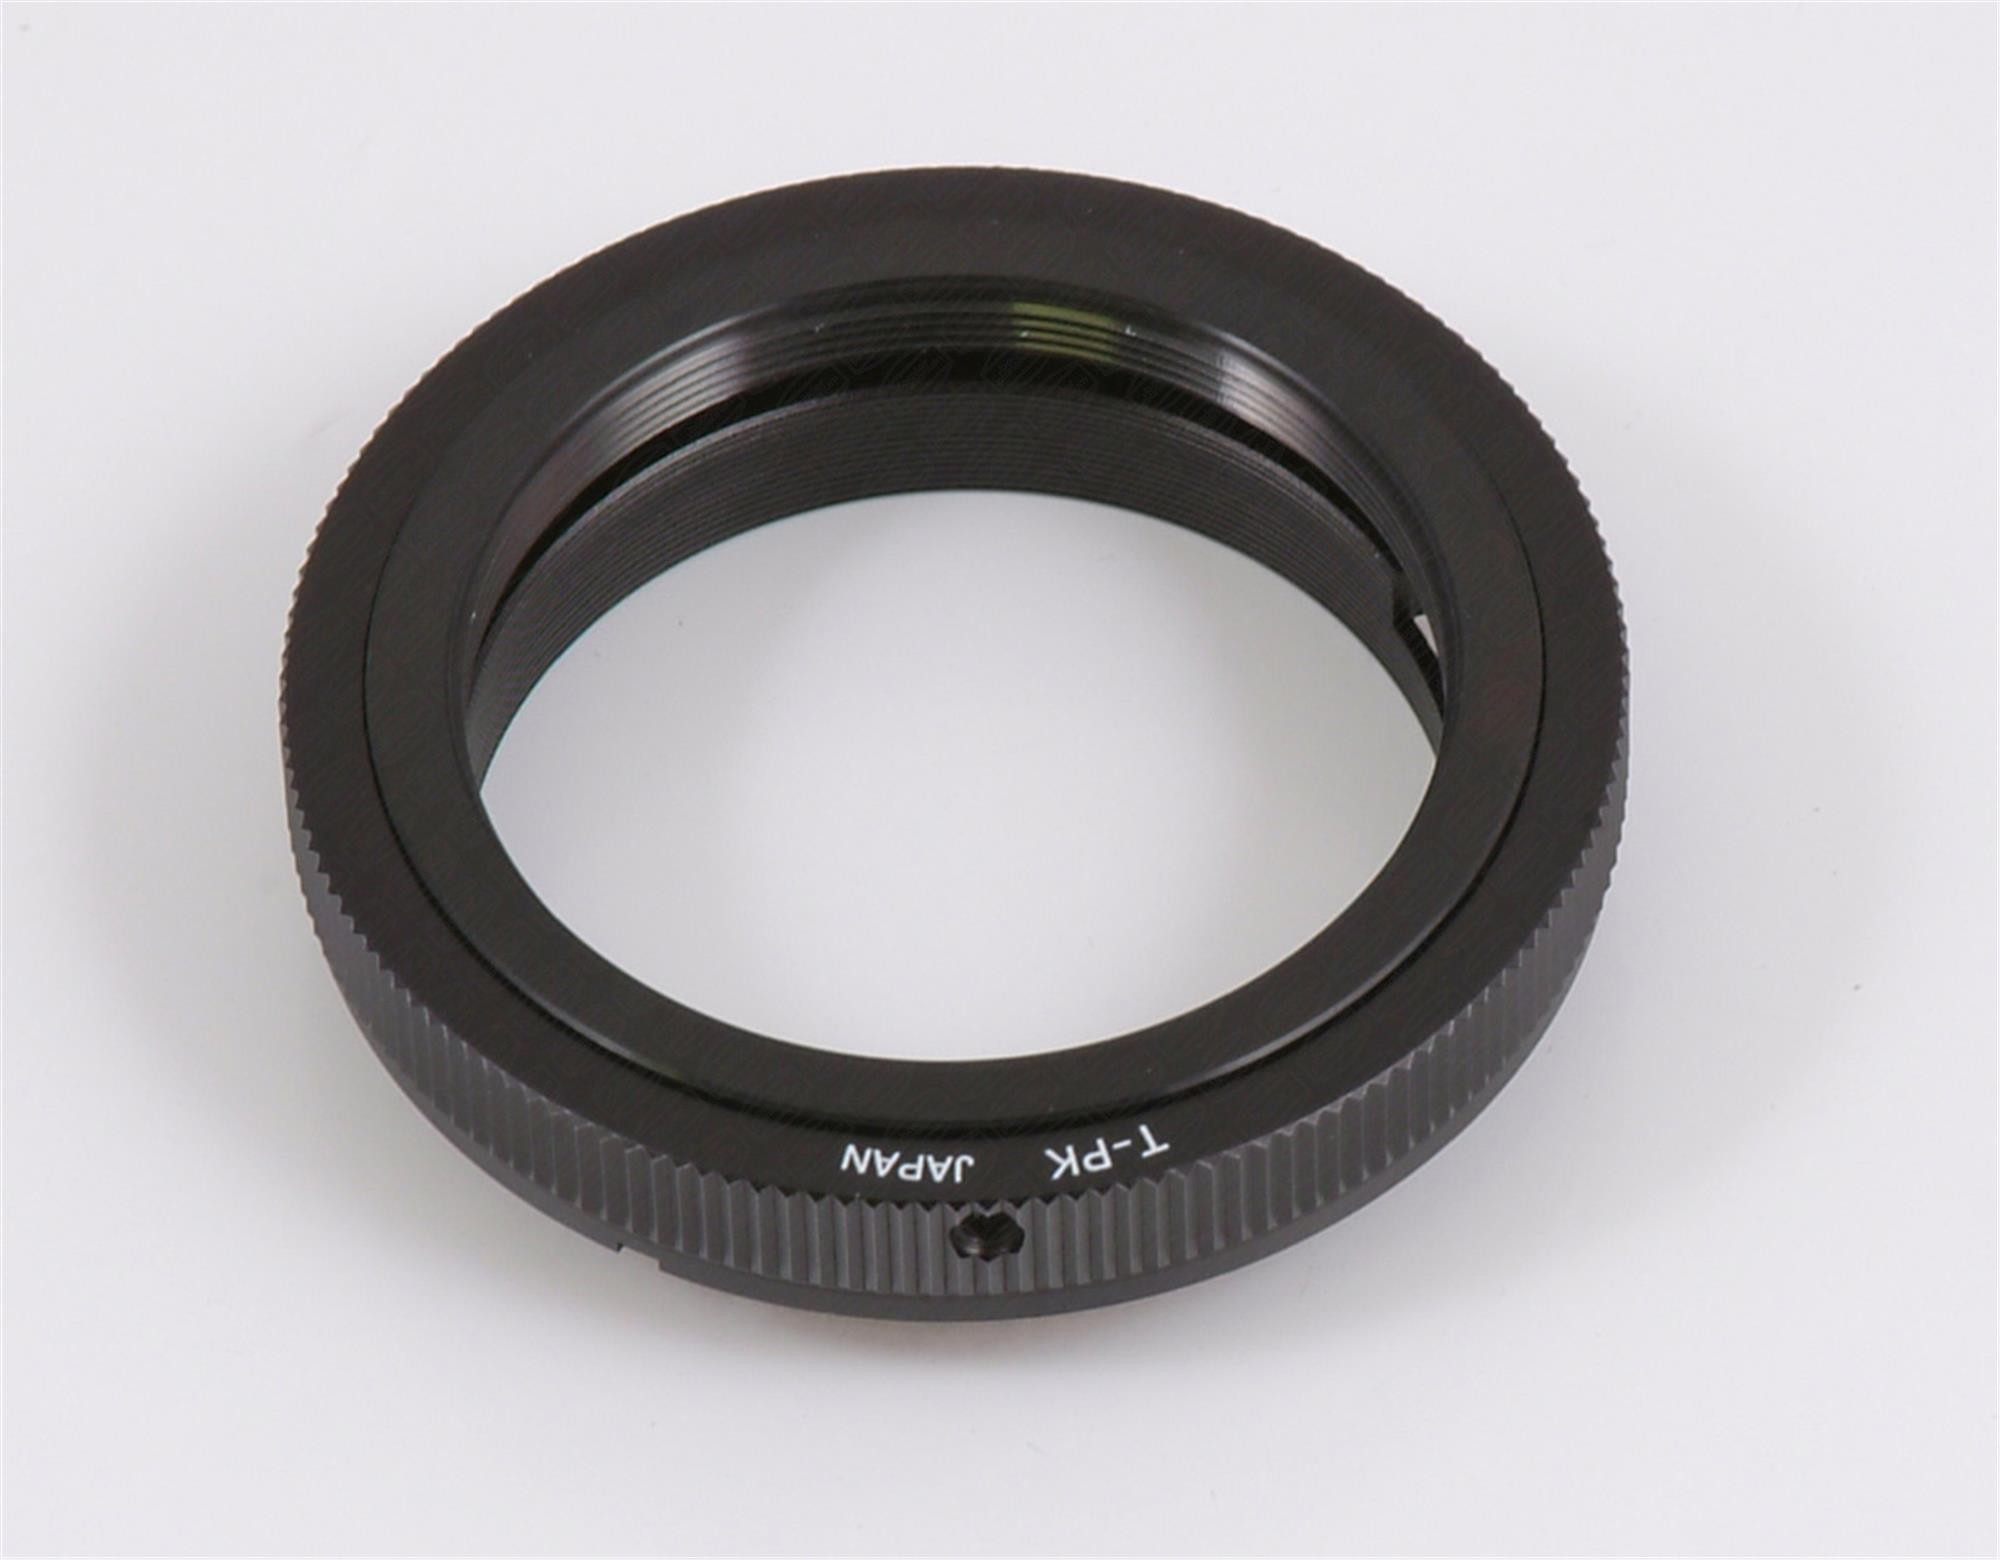 Baader T-Ring Pentax K to T-2